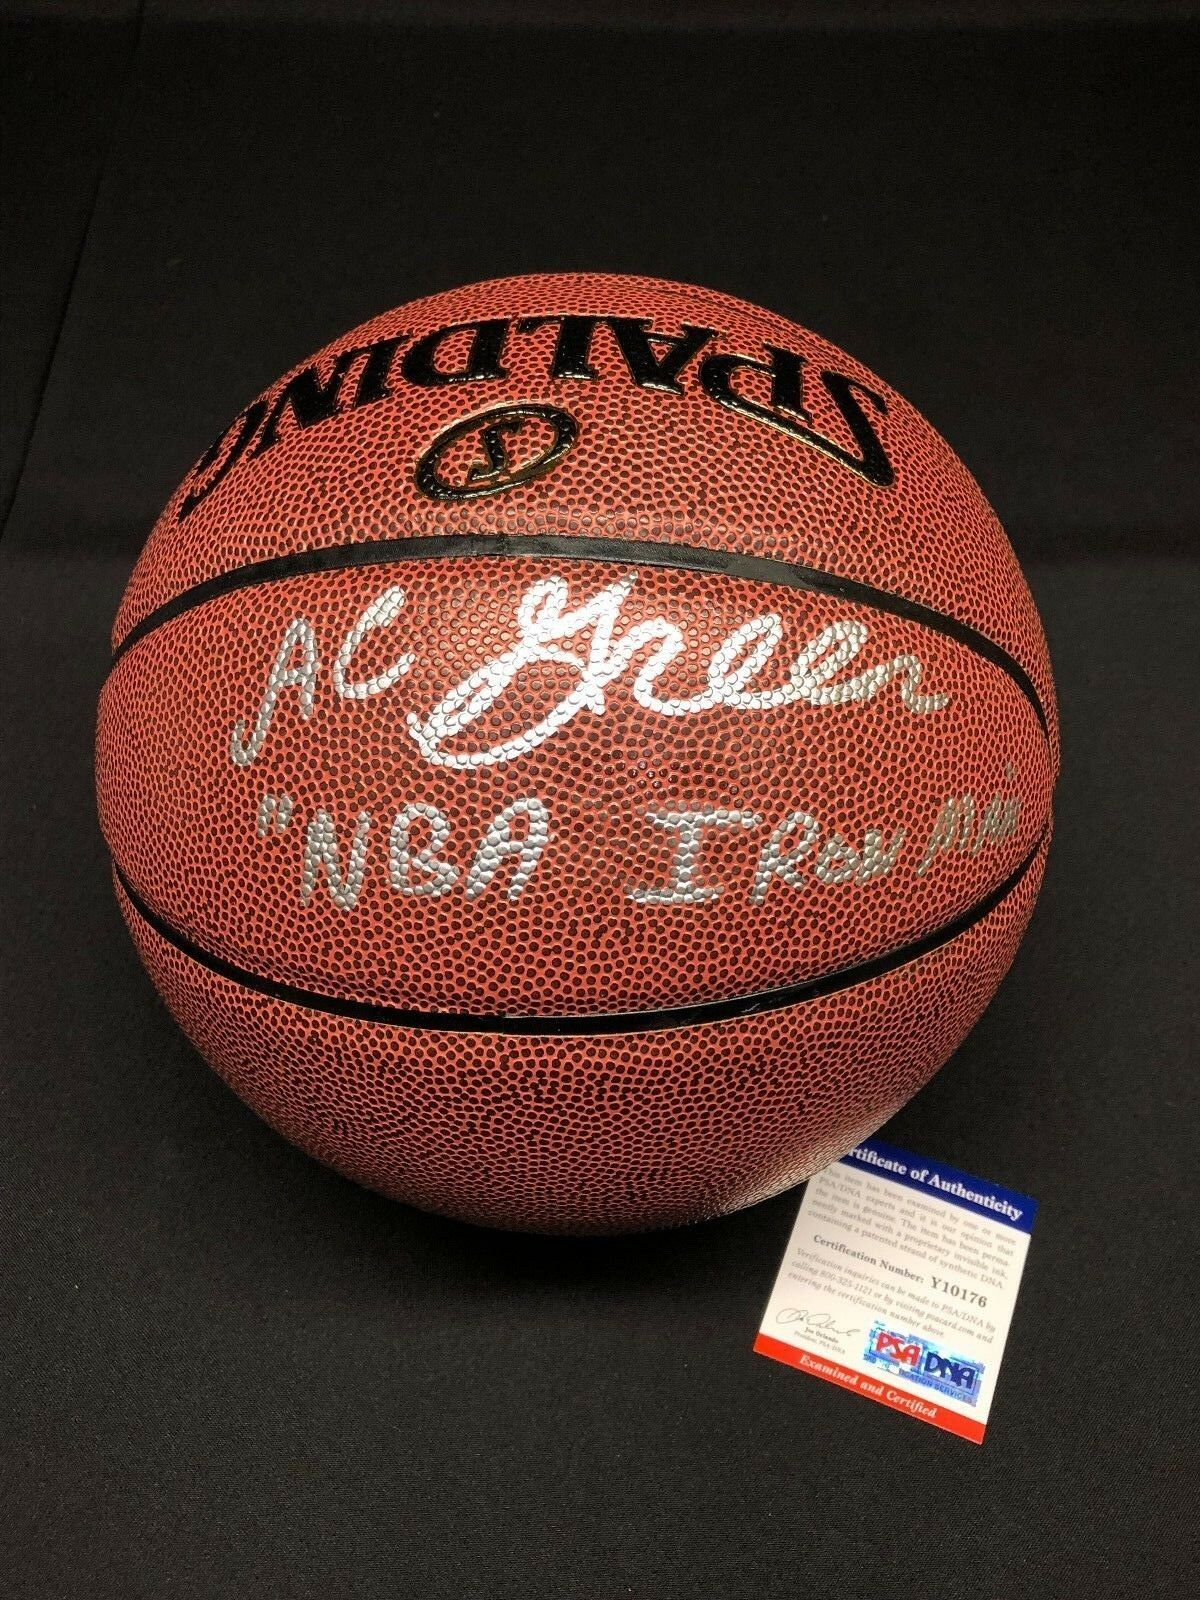 AC A.C. Green Signed Spalding I/O Basketball